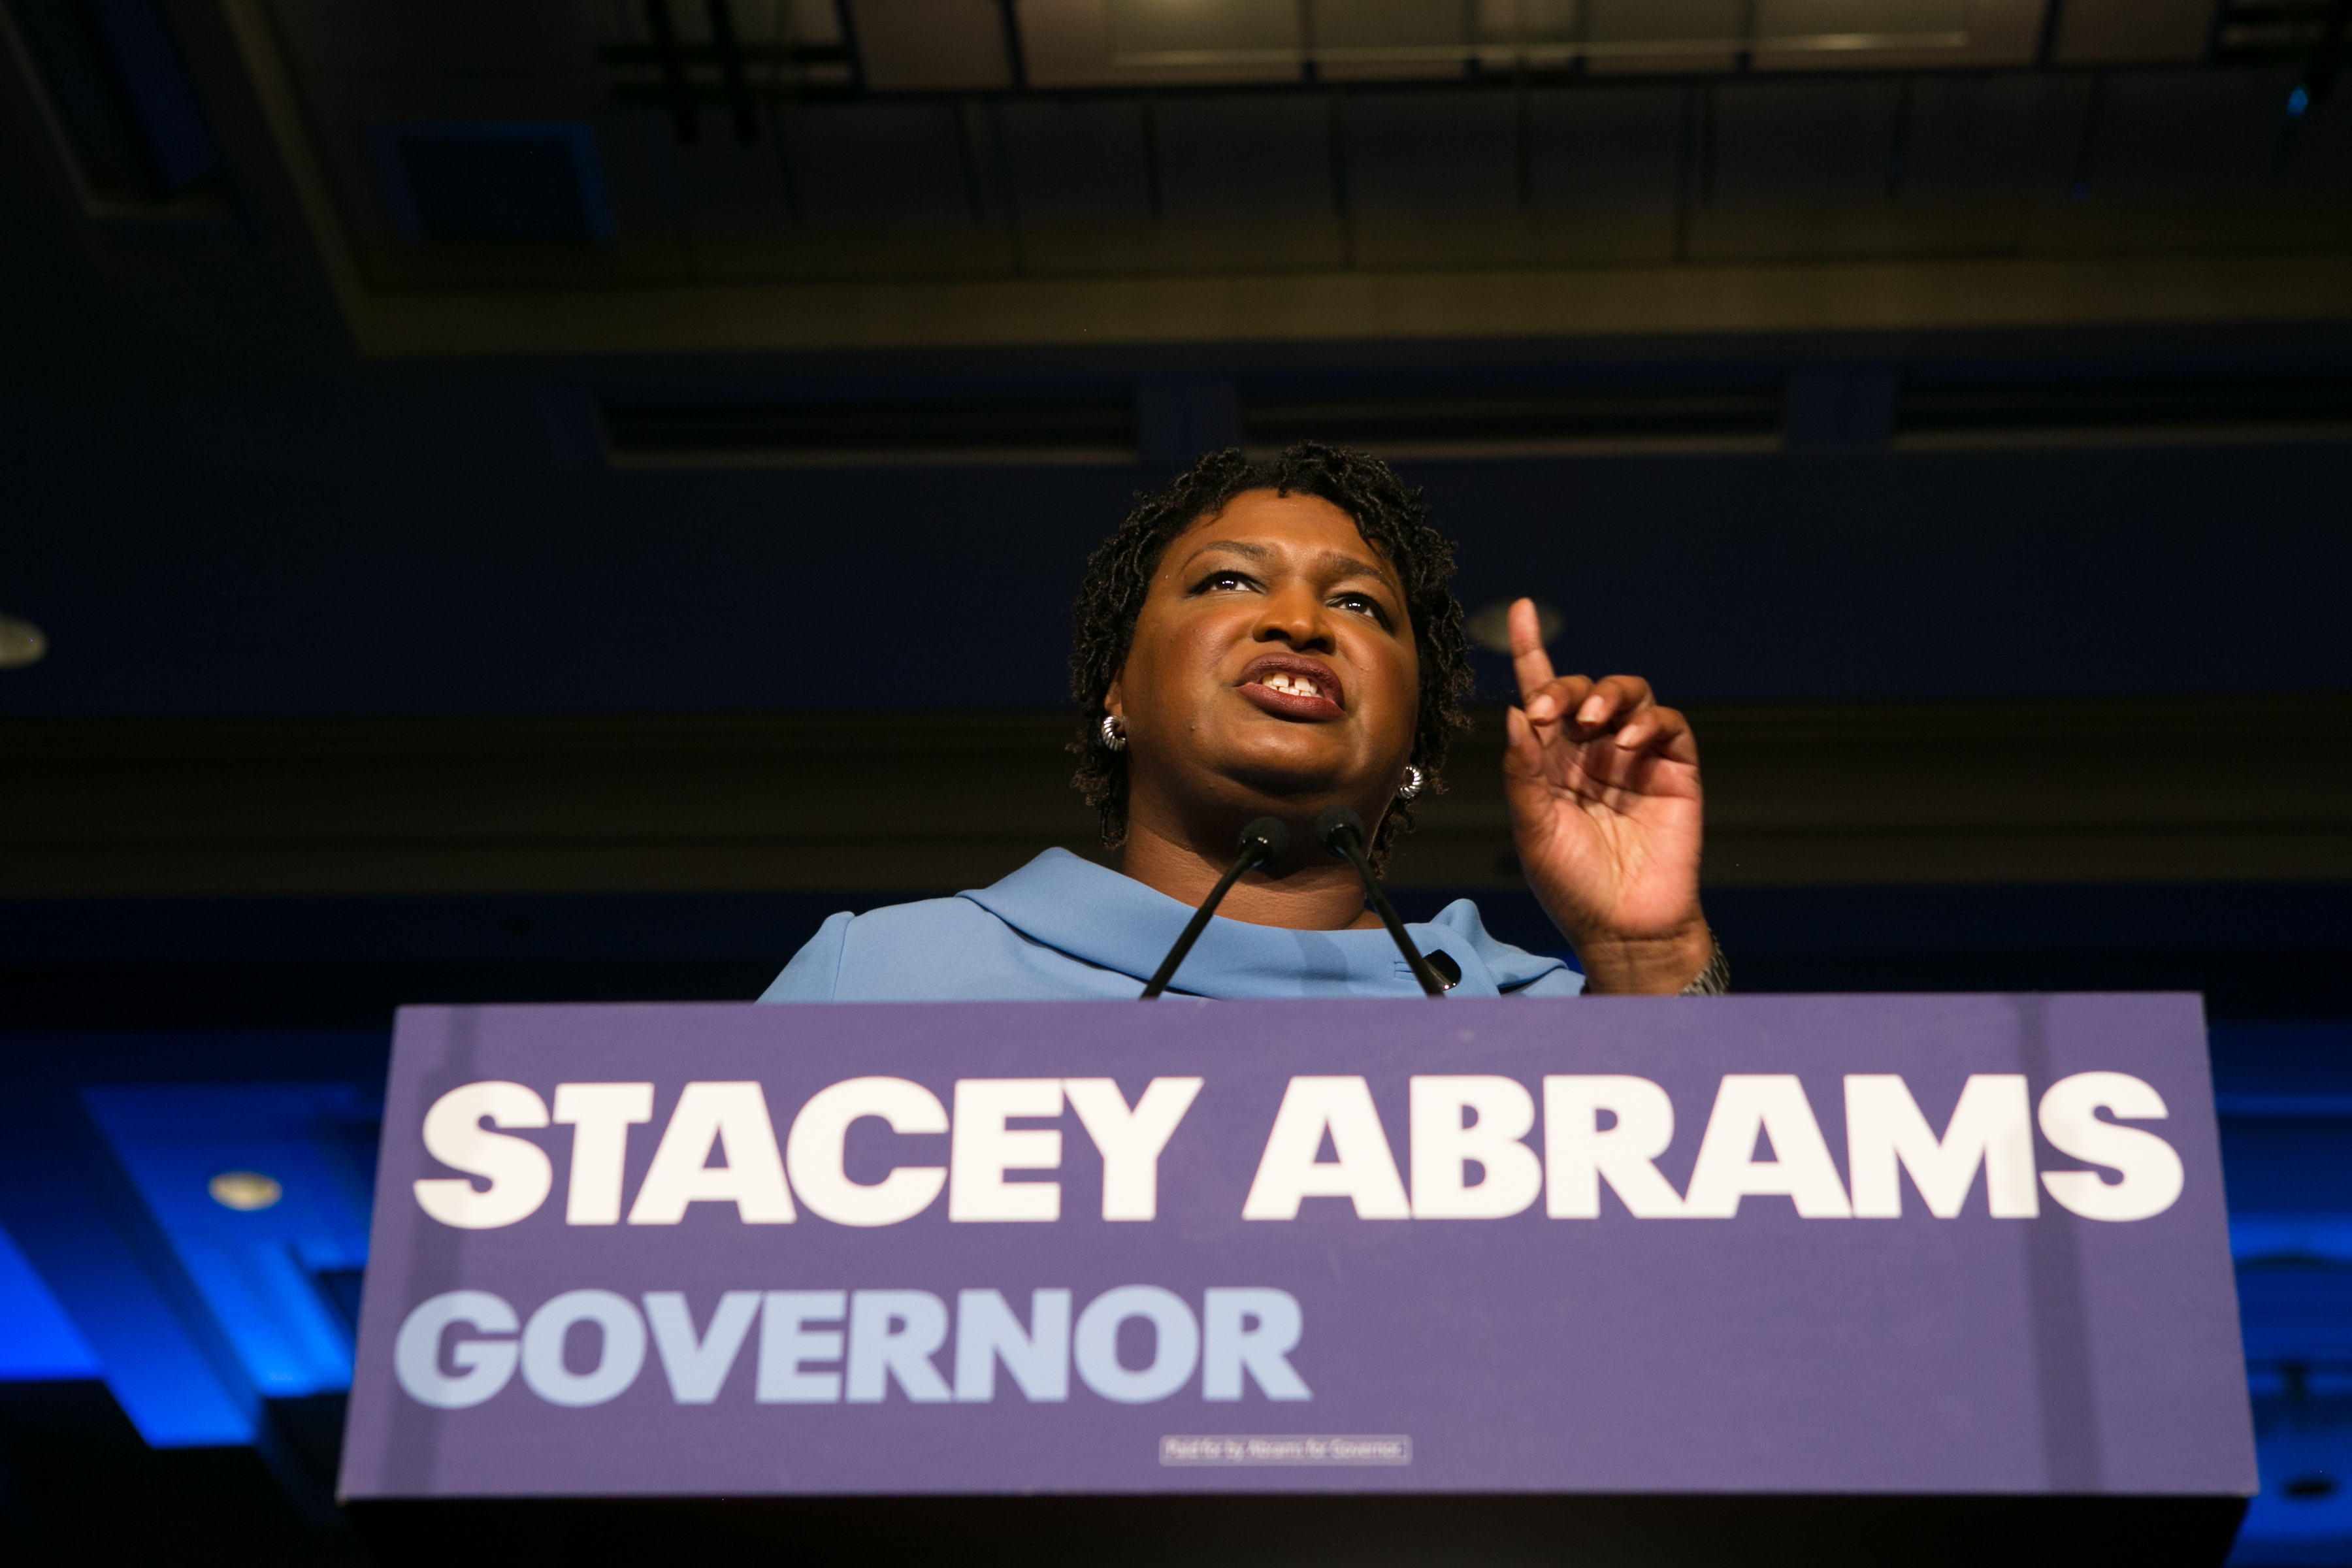 Democratic Gubernatorial candidate Stacey Abrams addresses supporters at an election watch party in Atlanta, Georgia. on Nov. 6, 2018.